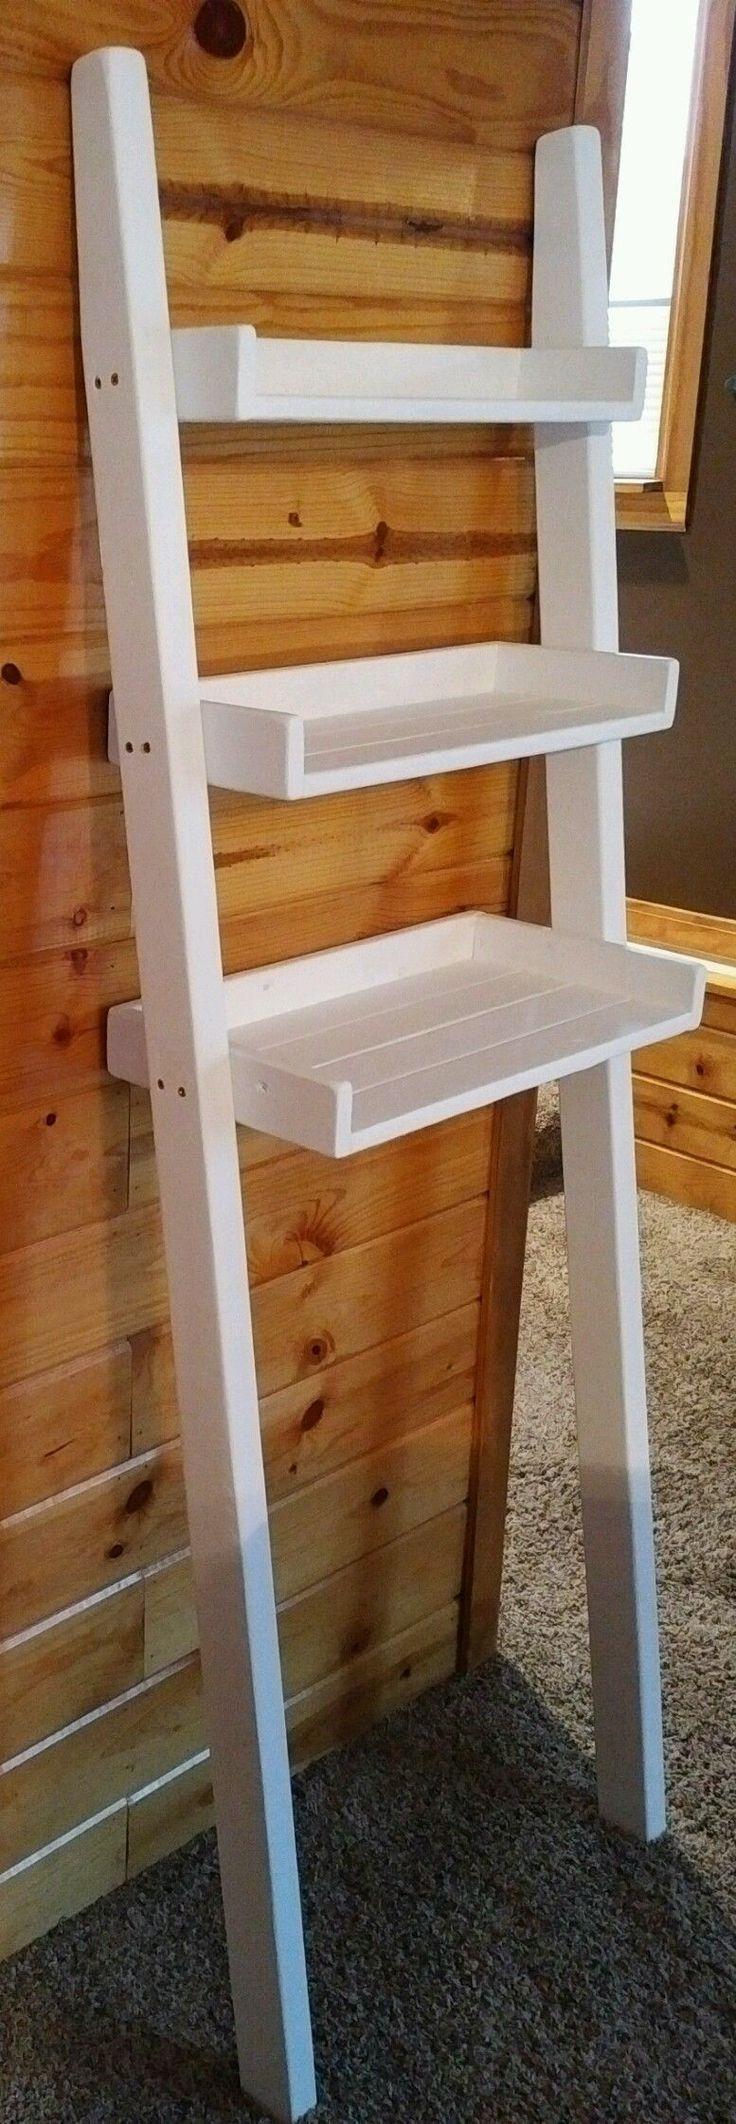 14 Best Leaning Ladder Shelf Images On Pinterest Leaning Ladder Shelf Paint Bathroom And